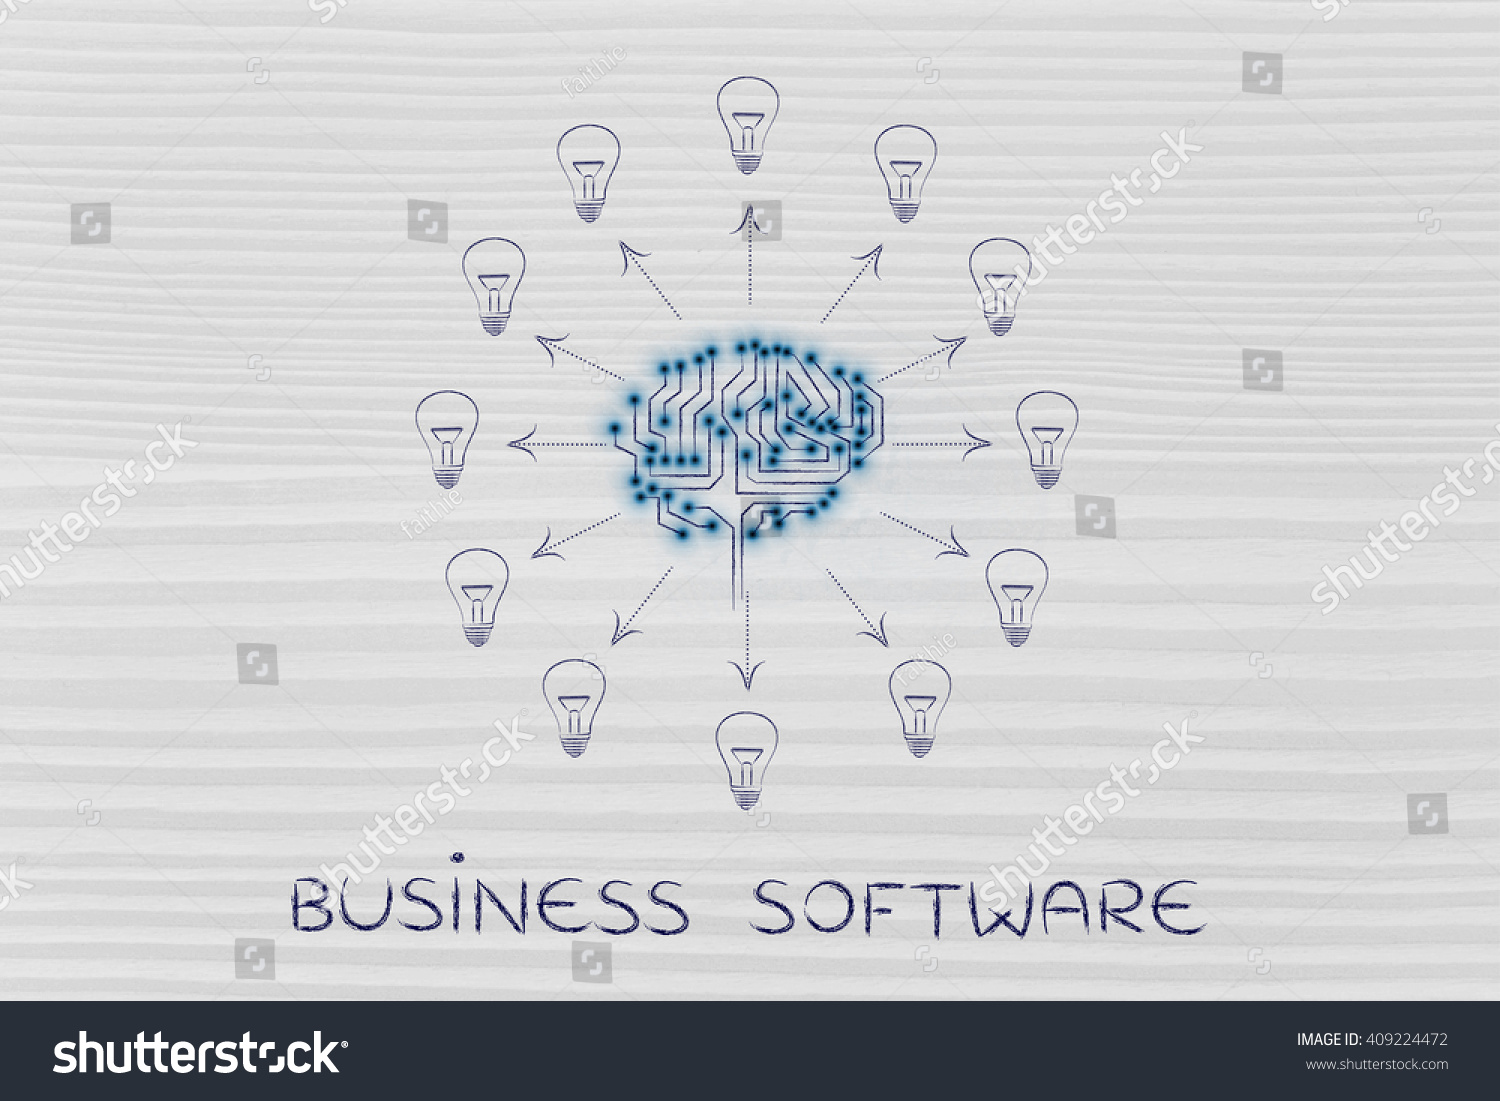 Business Software Electronic Circuit Brain Creating Stock Diagram Ideas With Arrows Pointing Out To Lightbulbs